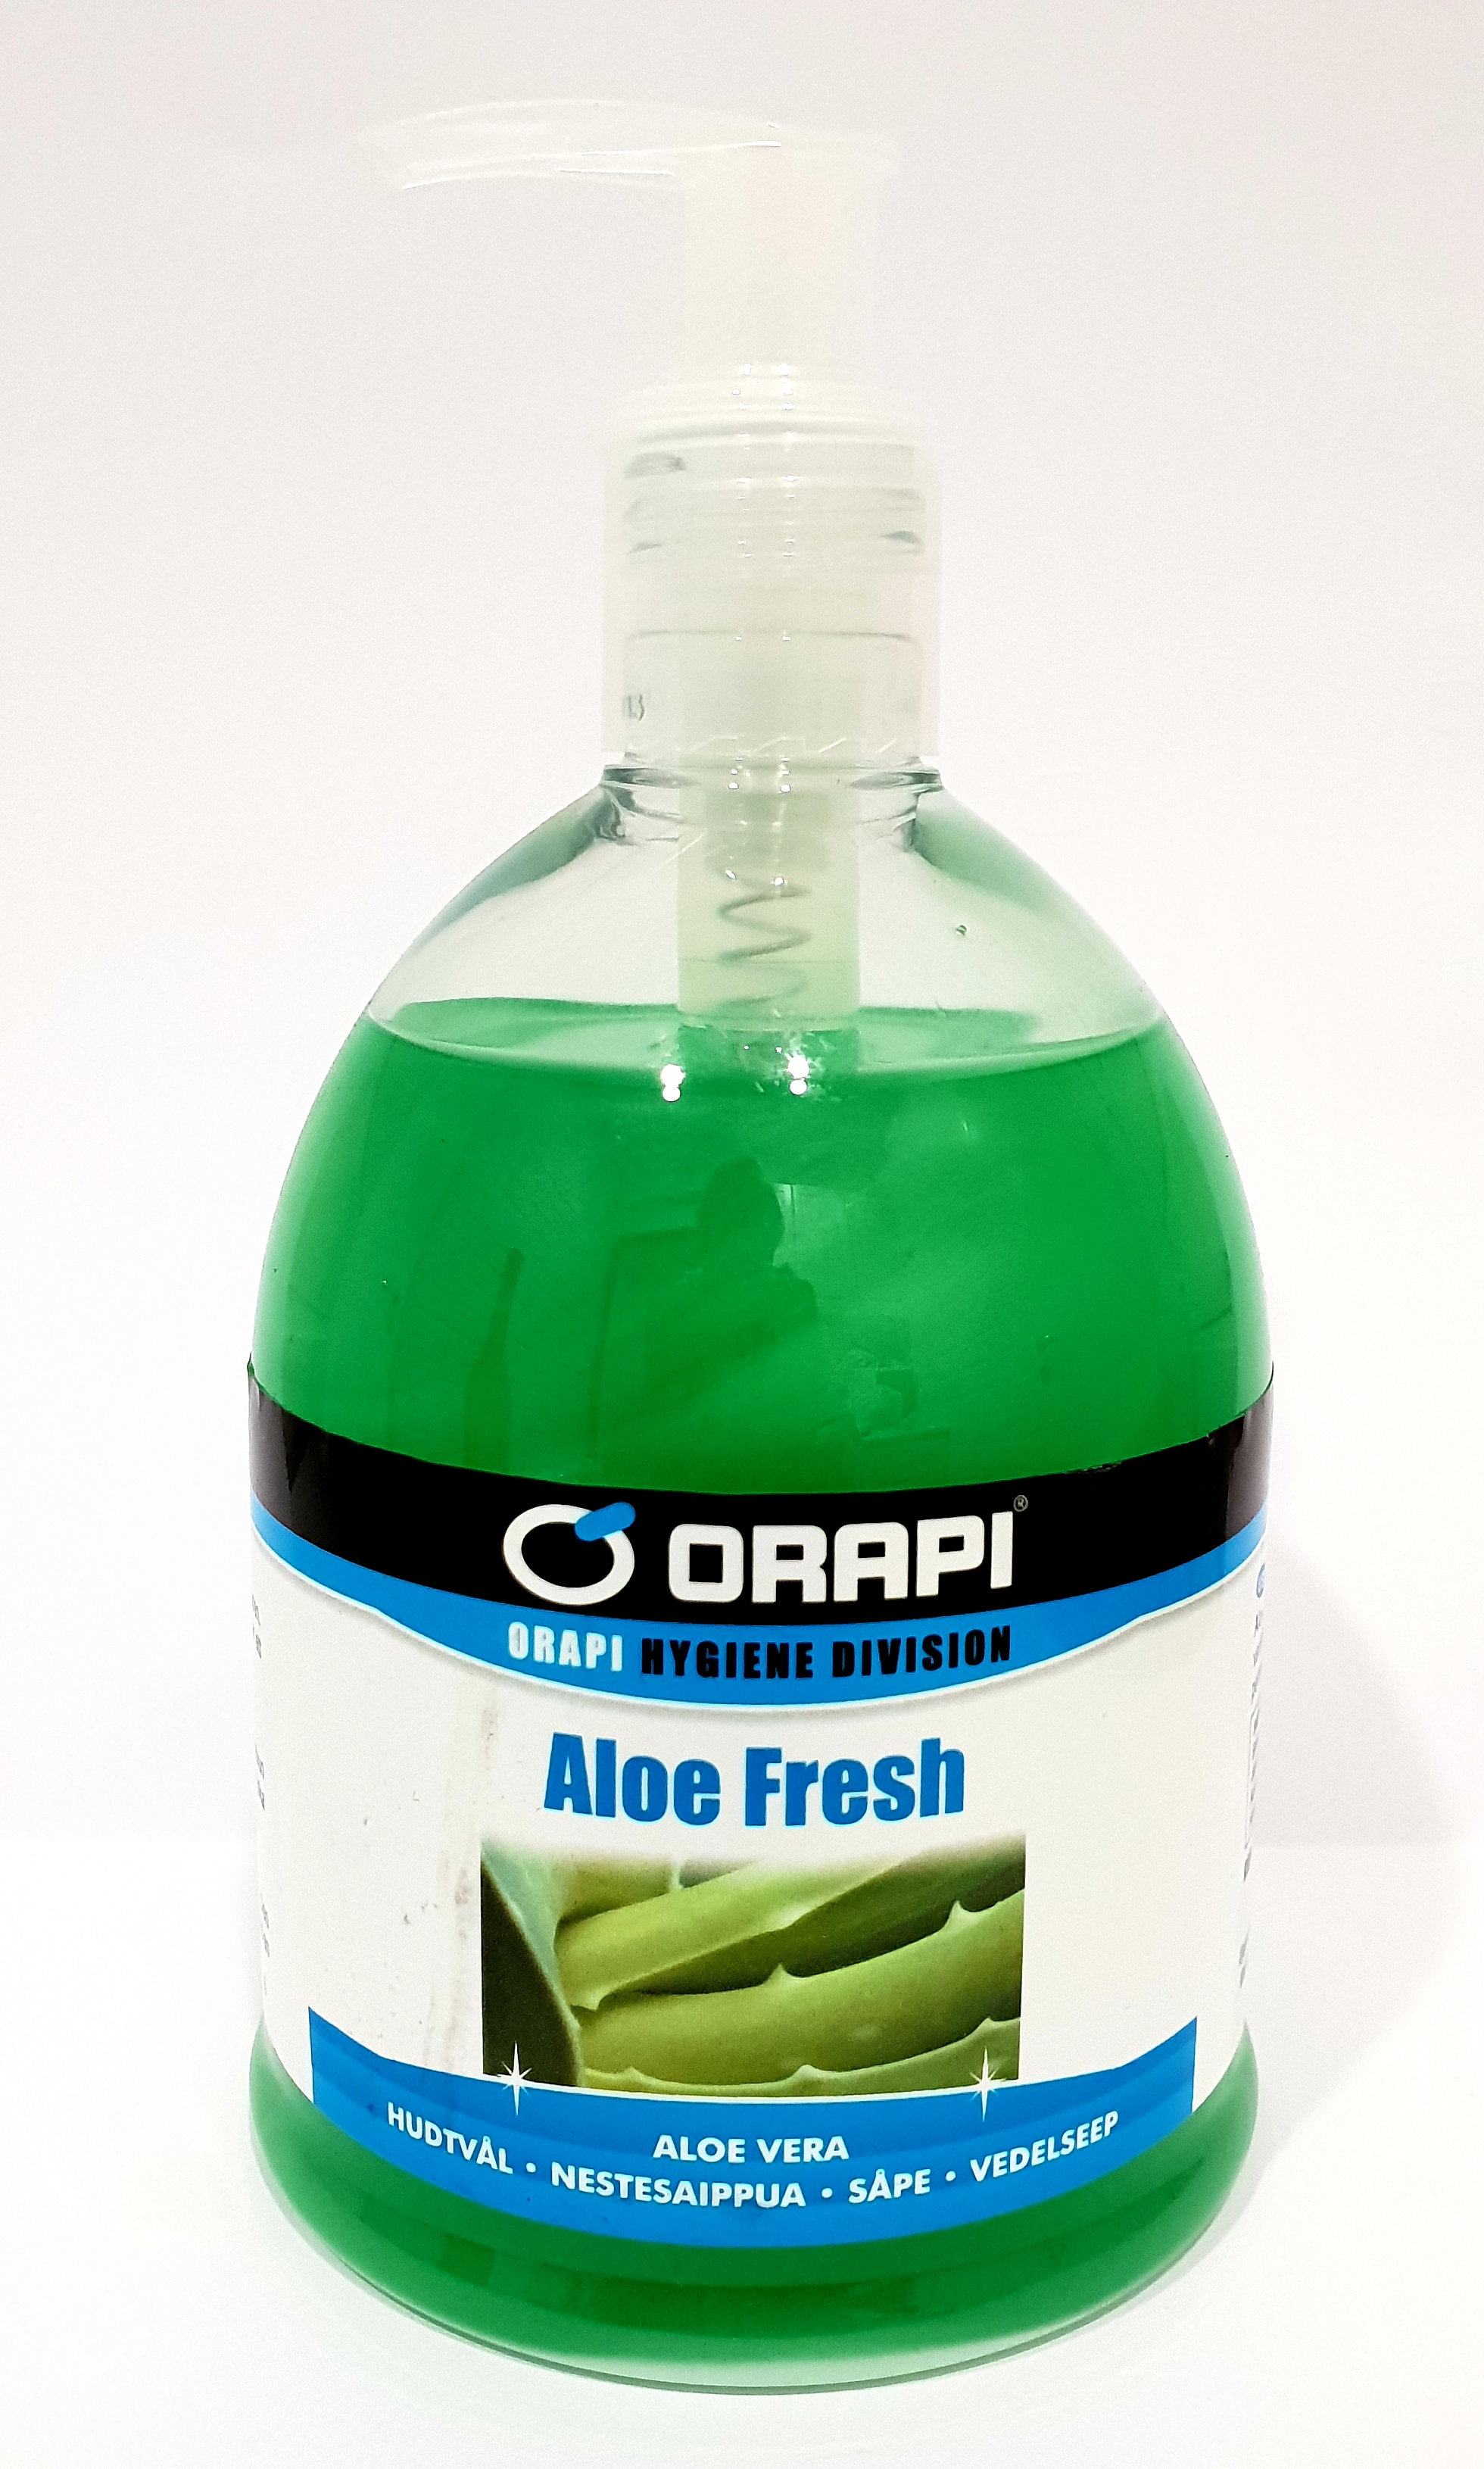 Aloe Fresh – Nestesaippua